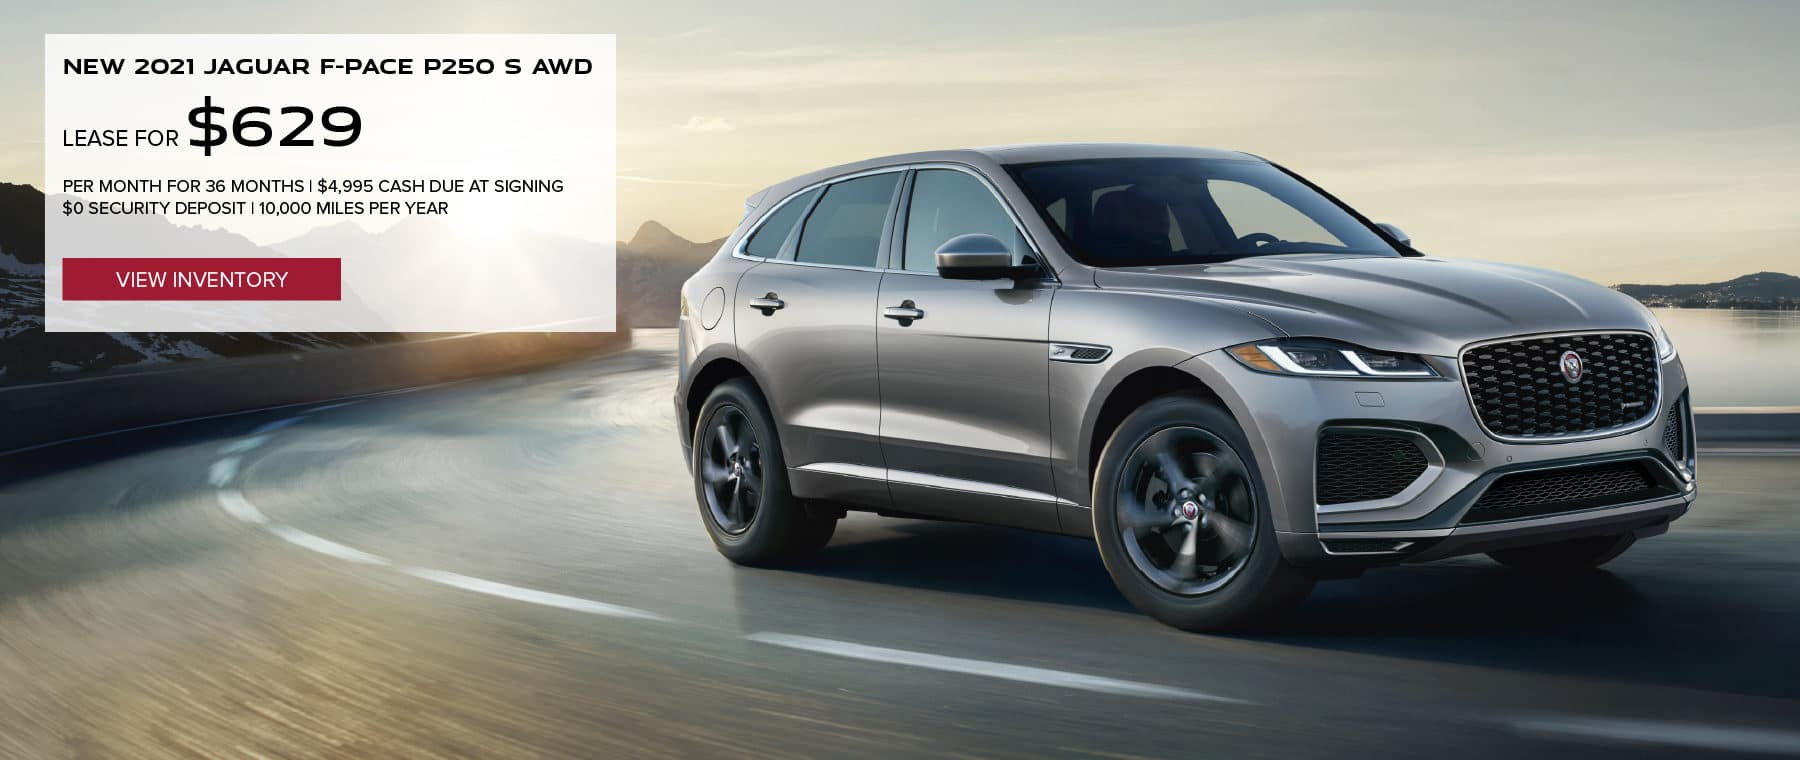 NEW 2021 JAGUAR F-PACE P250 S AWD. $629 PER MONTH. 36 MONTH LEASE TERM. $4,995 CASH DUE AT SIGNING. $0 SECURITY DEPOSIT. 10,000 MILES PER YEAR. EXCLUDES RETAILER FEES, TAXES, TITLE AND REGISTRATION FEES, PROCESSING FEE AND ANY EMISSION TESTING CHARGE. OFFER ENDS 8/2/2021. SILVER JAGUAR F-PACE DRIVING THROUGH DESEST. VIEW INVENTORY.